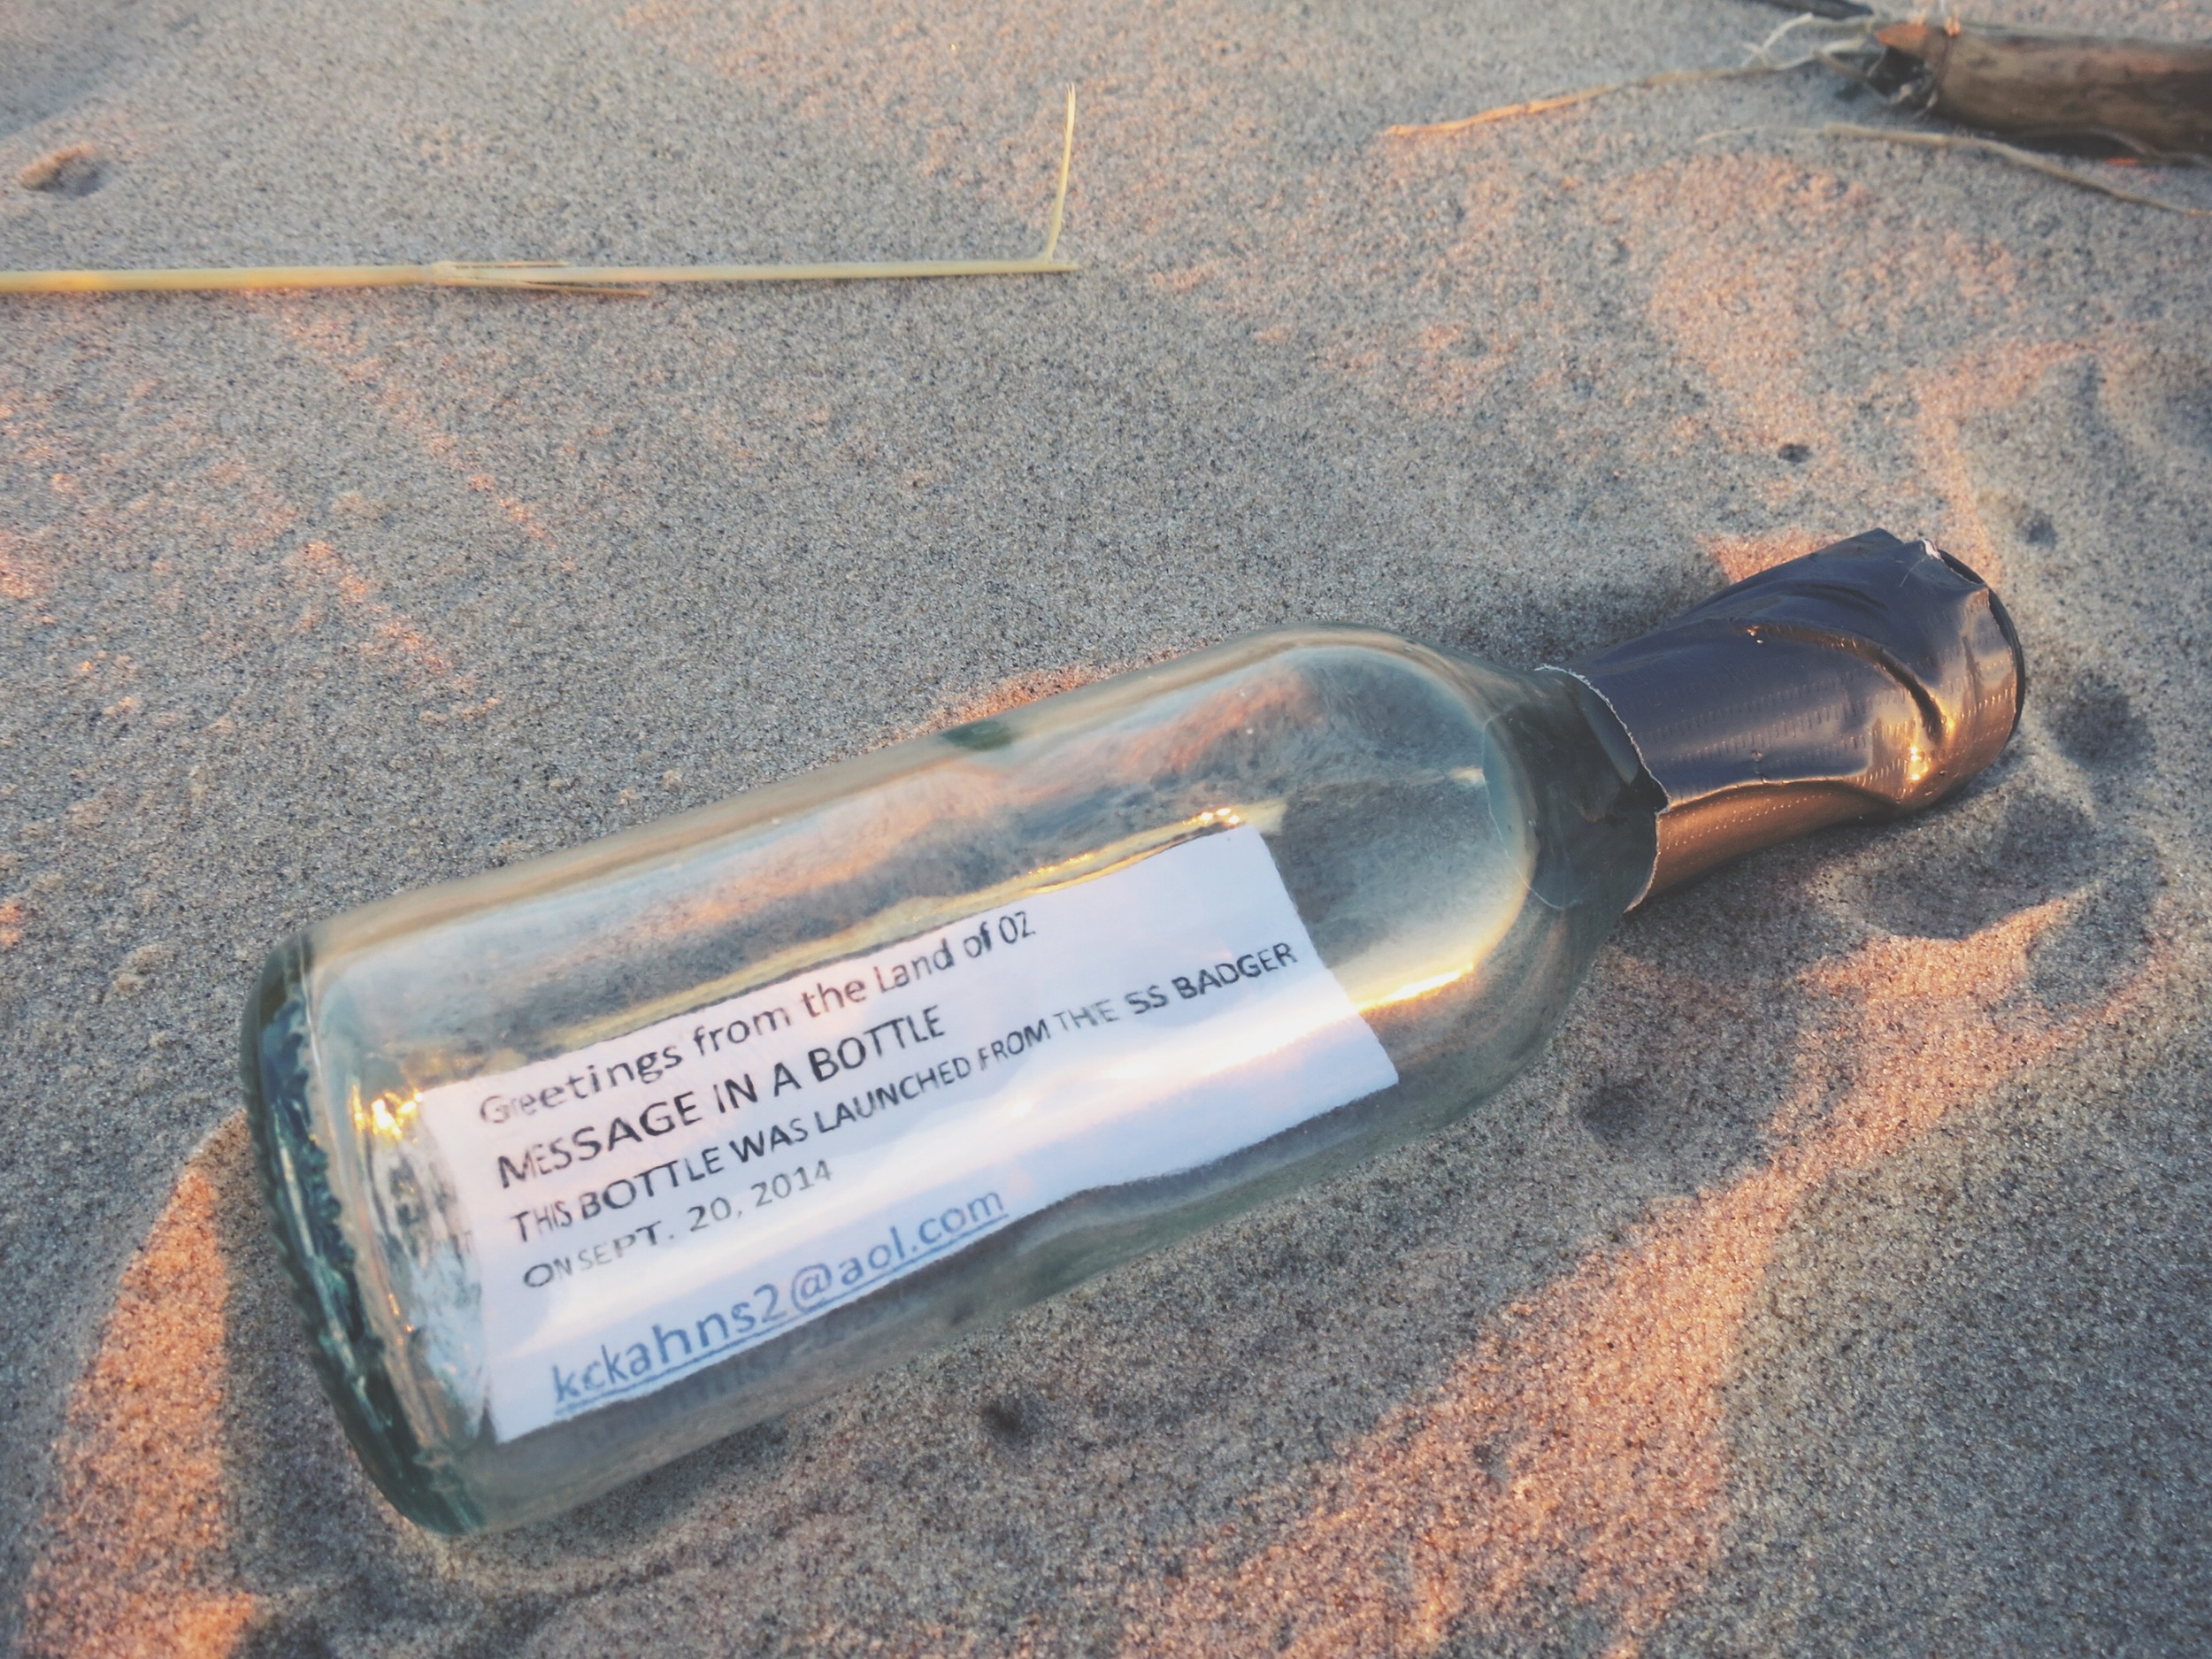 As if the trip weren't magical enough, I found a message in a bottle washed up on the shore as I was attempting to position myself directly between the setting sun and the rising full moon. Simply magic.